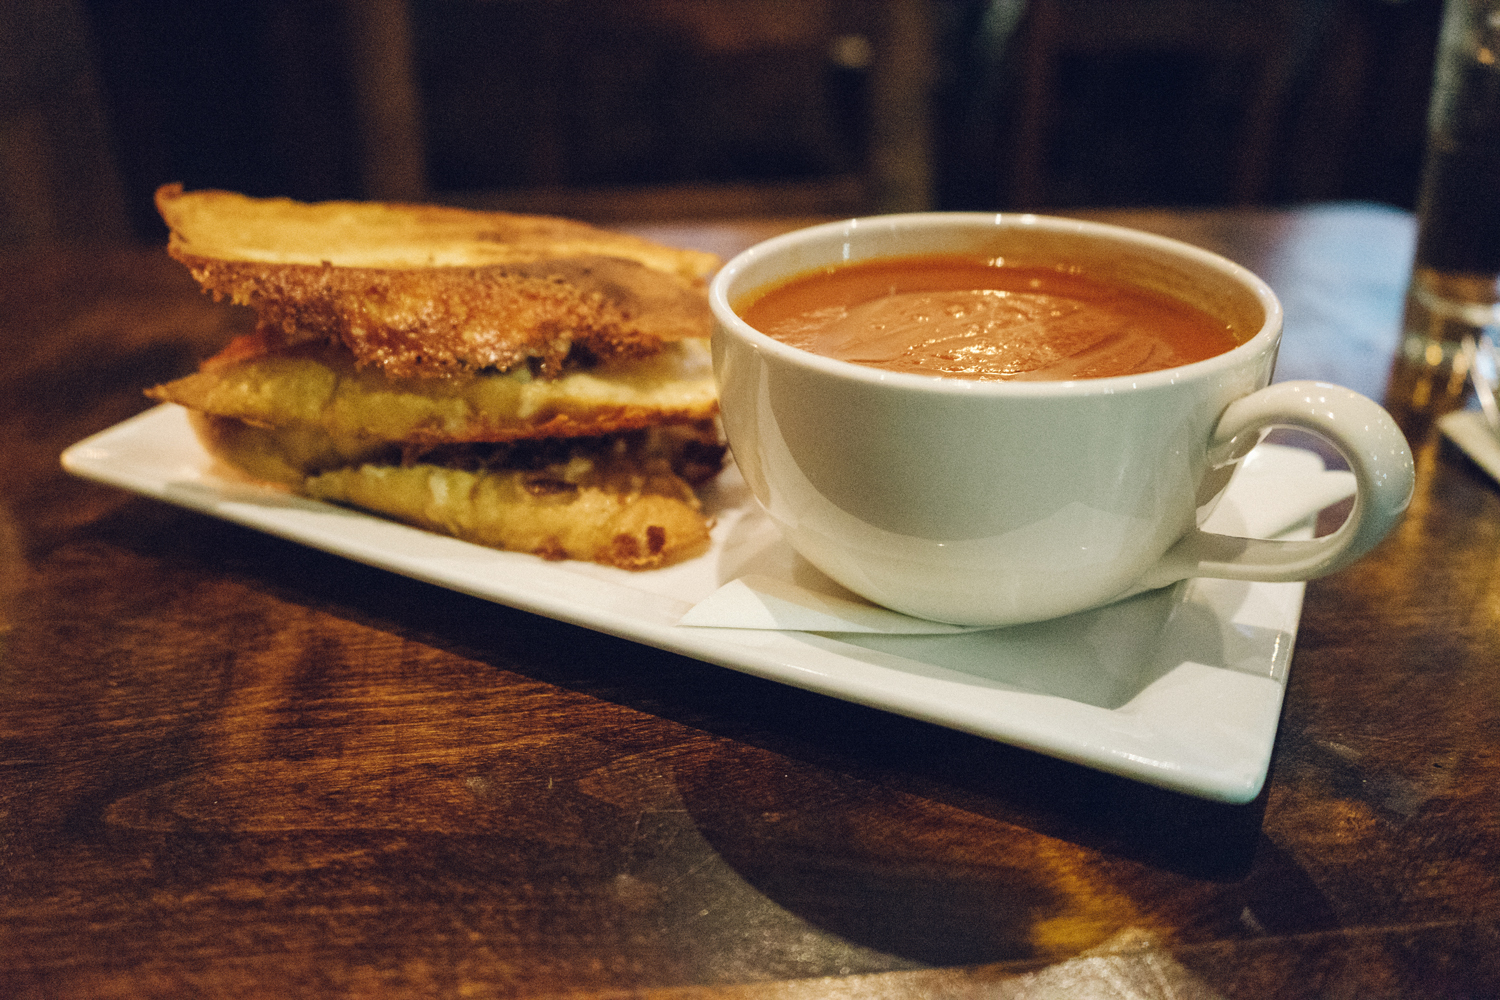 Burgoo - grilled cheese and tomato soup, The Burrard Hotel, Vancouver, BC